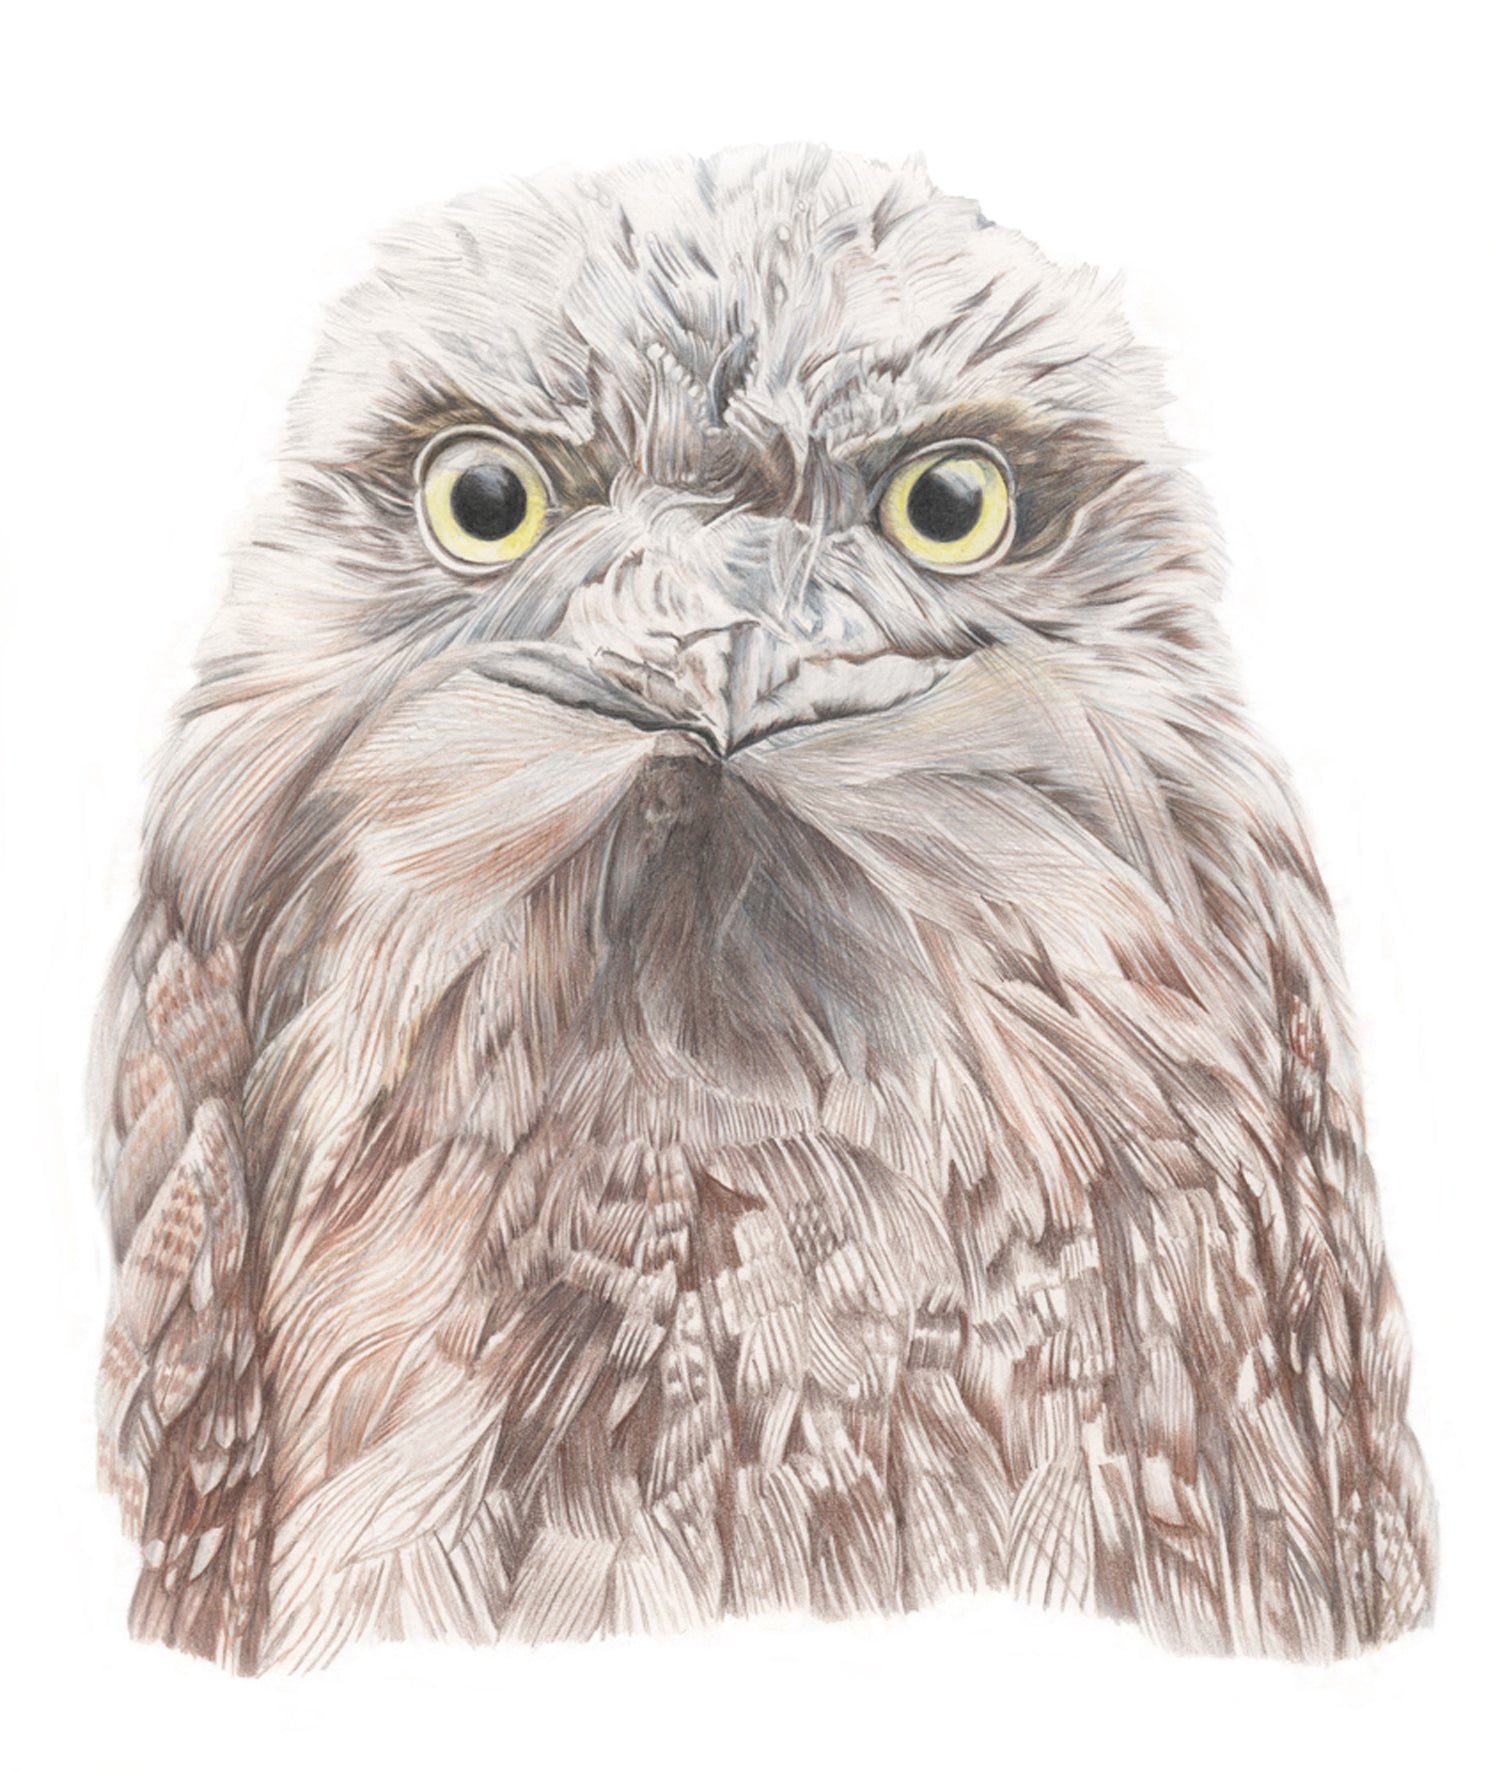 Tawny Frog Mouth print by Alison Dickin